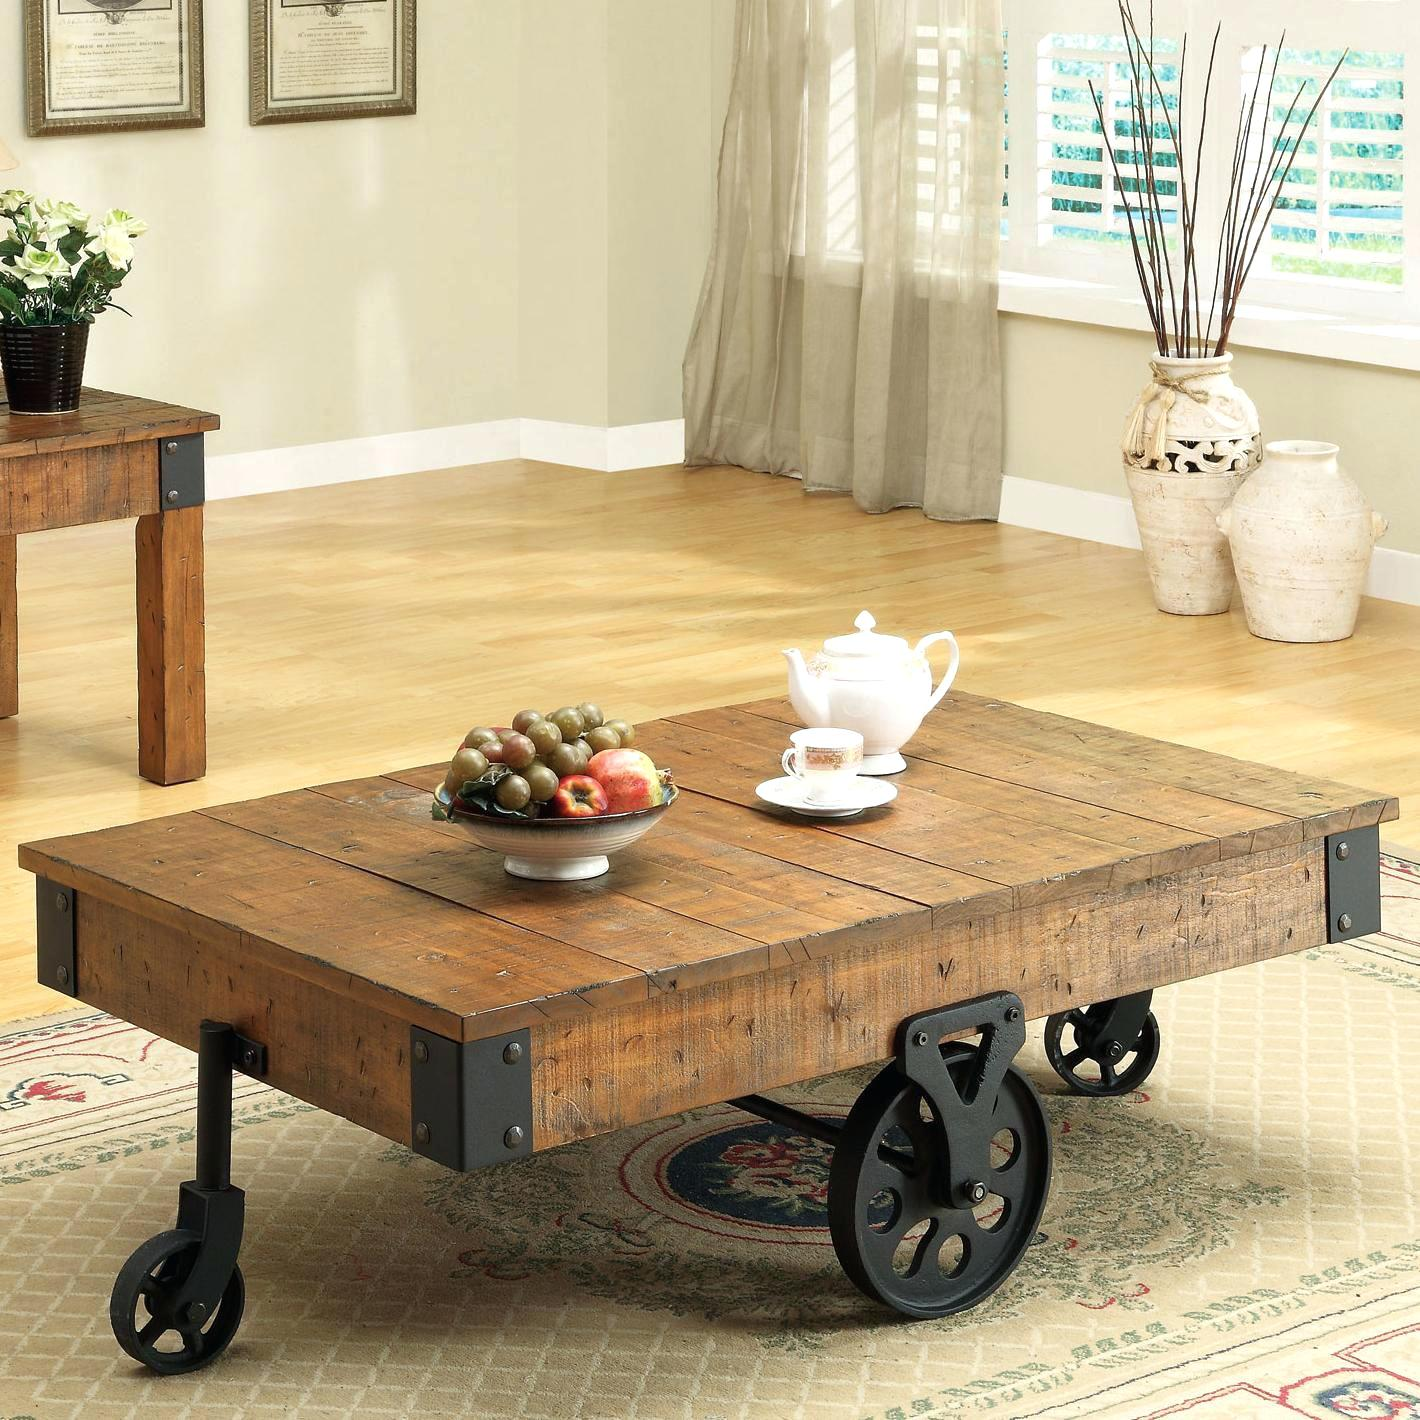 coffee table accents dining room accent pieces living tables cool coaster distressed country wagon fine furniture chair decorative home decor modern and end ikea narrow storage